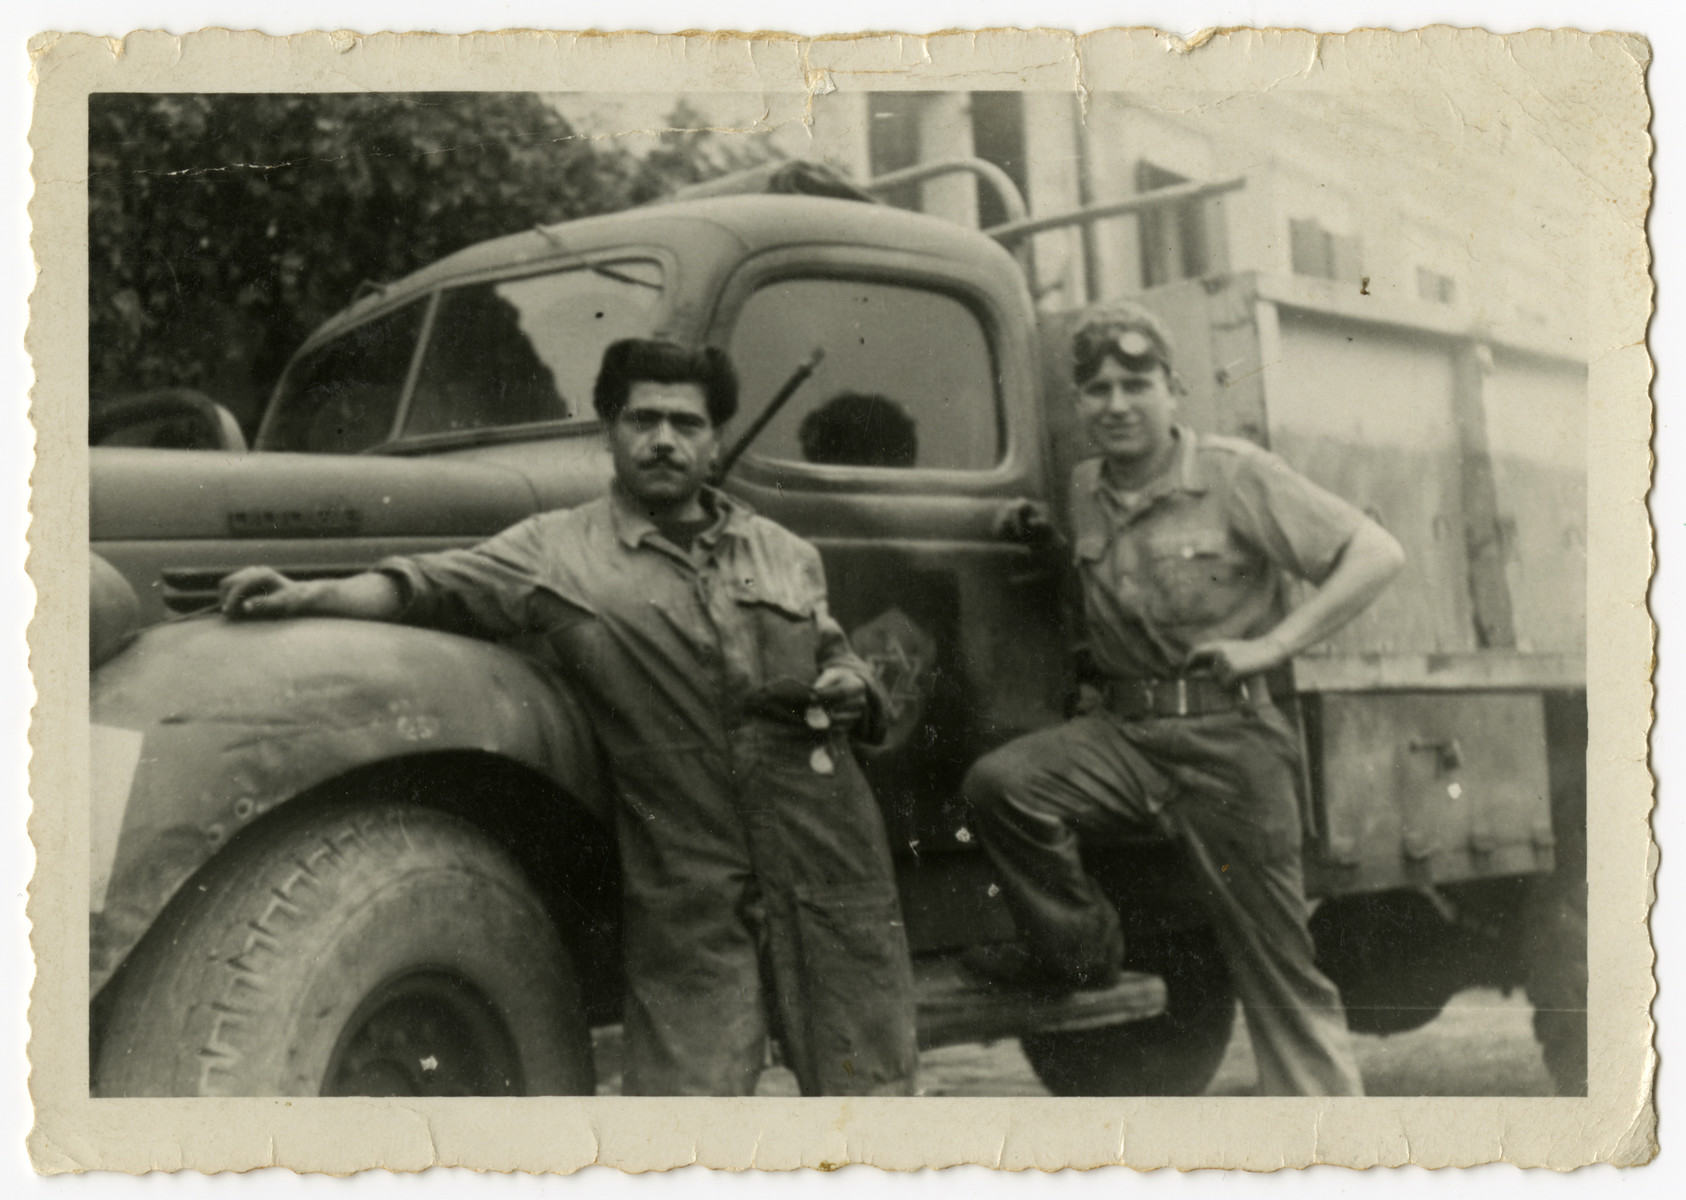 David Levi leans against the side of a truck while serving in the Jewish Brigade in Italy.